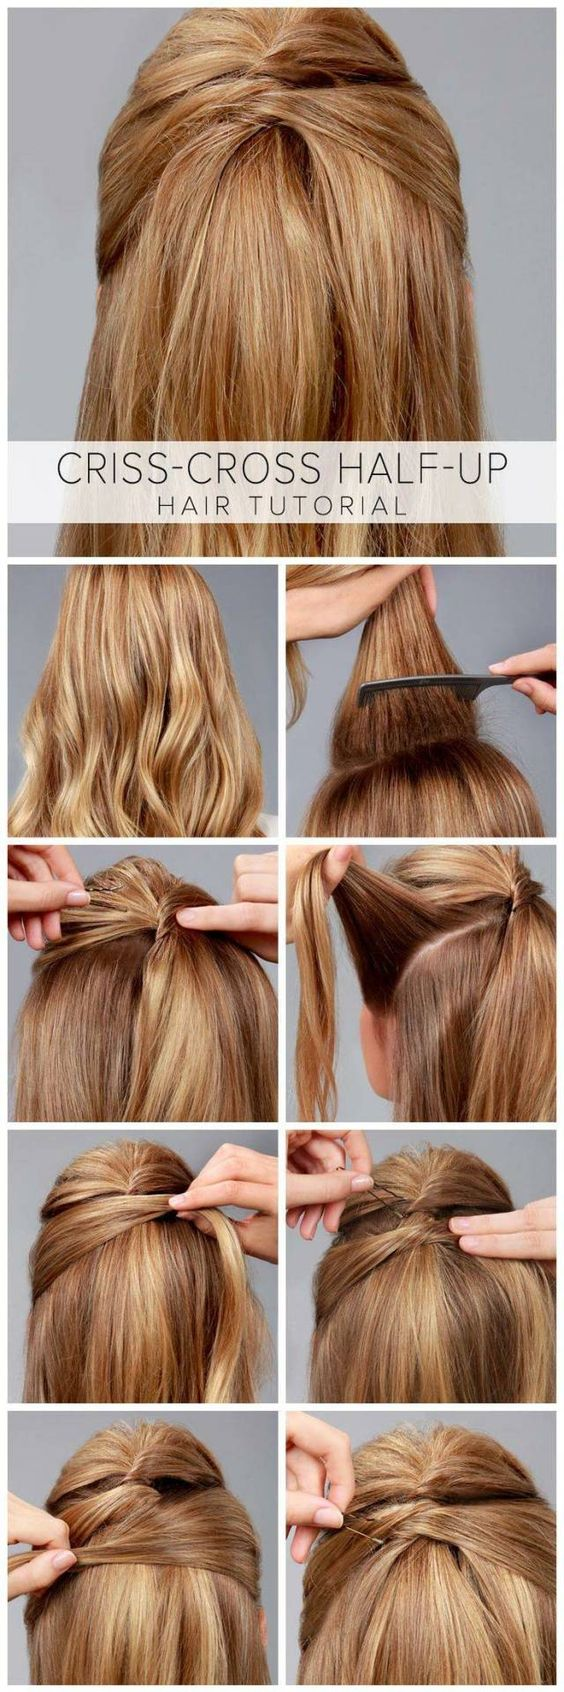 Criss cross half-up hairstyle - Visit www.pinterest.com/rawritzmavesa/hairstyles/ for more amazing hairstyles and tutorials! :D